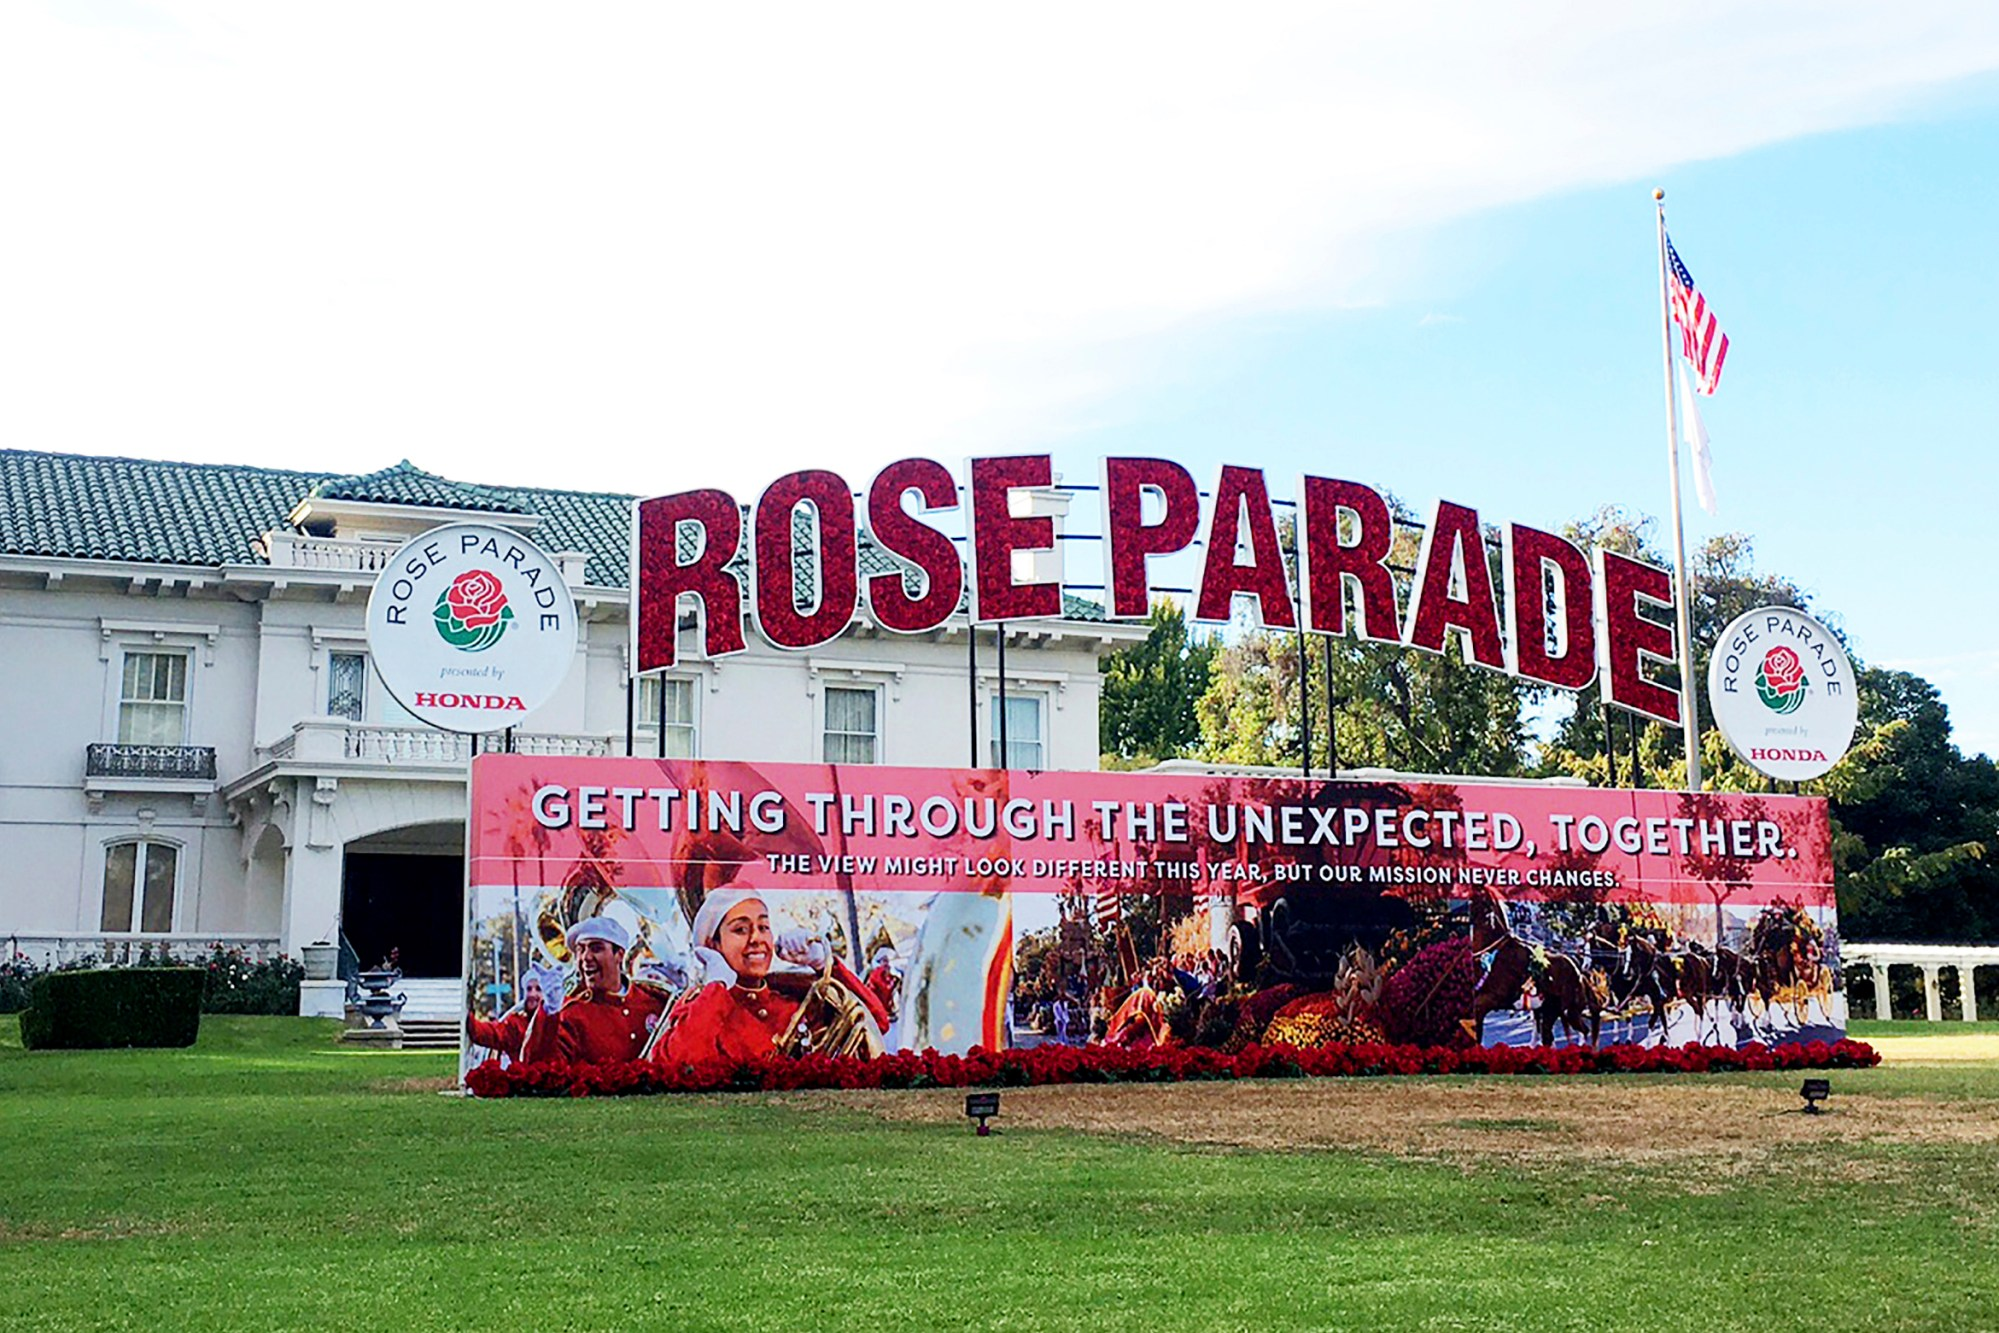 Tournament House, the headquarters of the Tournament of Roses, sponsor of the Rose Parade, is shown Wednesday, Dec. 9, 2020, in Pasadena. (AP Photo/John Antczak)